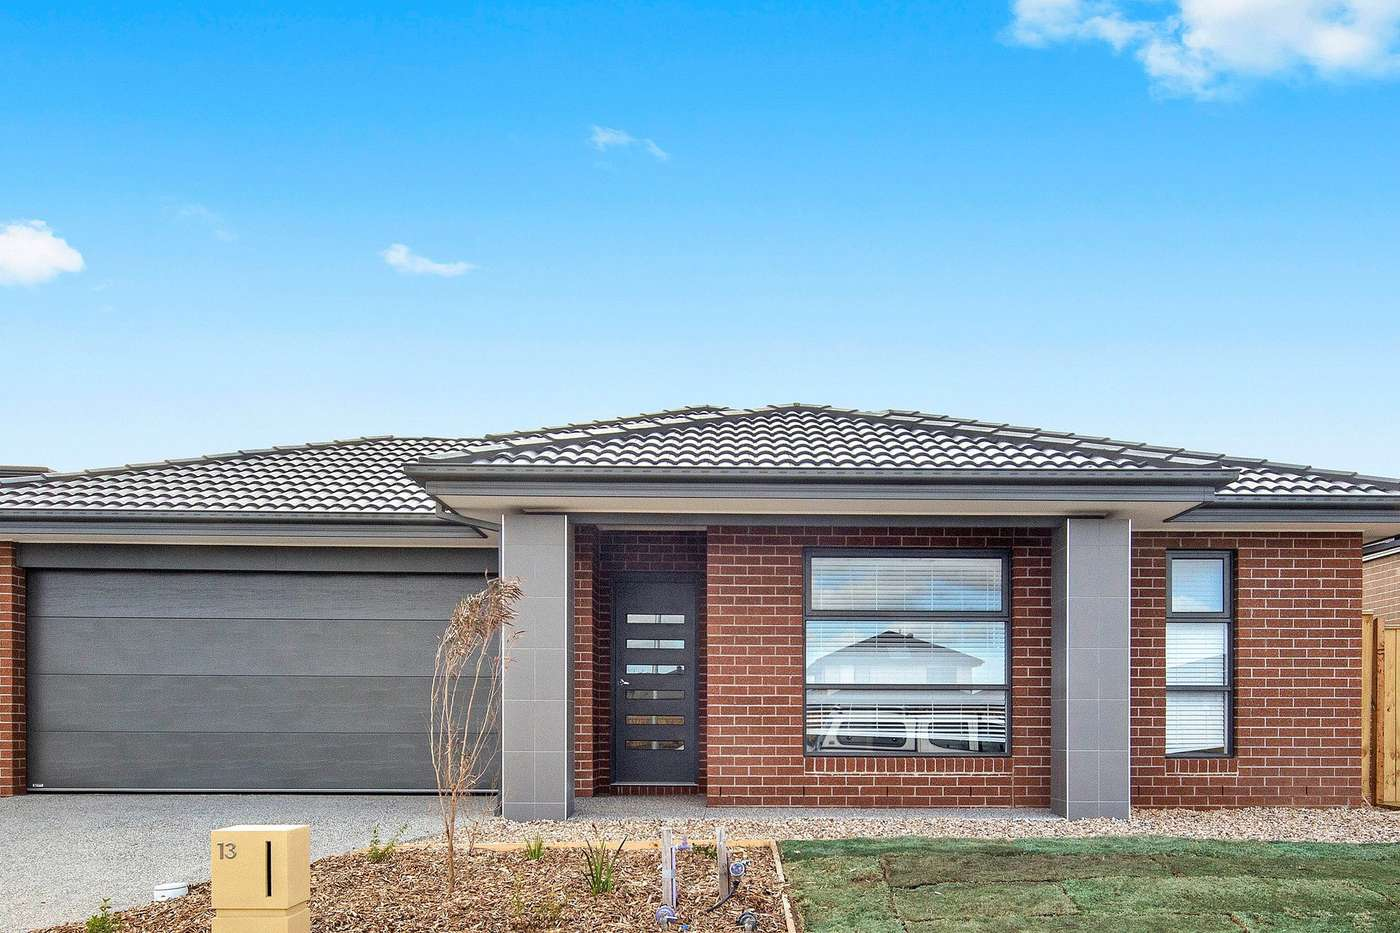 Main view of Homely house listing, 13 Weighbridge Avenue, Wyndham Vale, VIC 3024